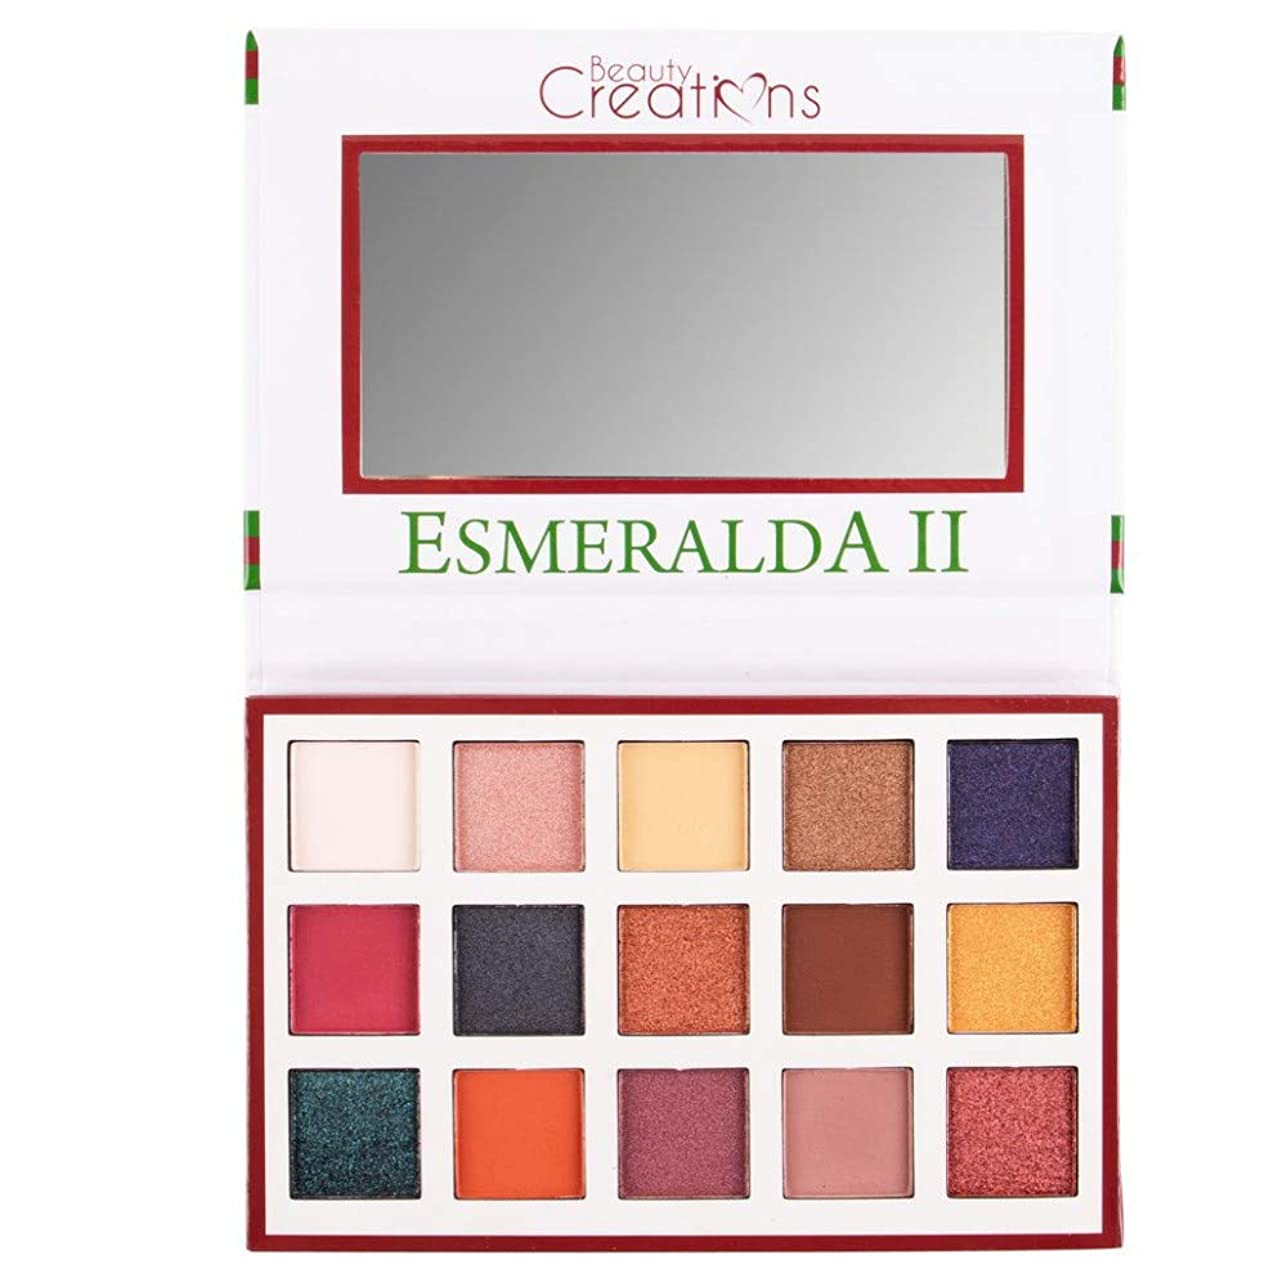 遺跡崩壊カウボーイ(6 Pack) BEAUTY CREATIONS Esmeralda II 15 Color Eyeshadow Palette (並行輸入品)